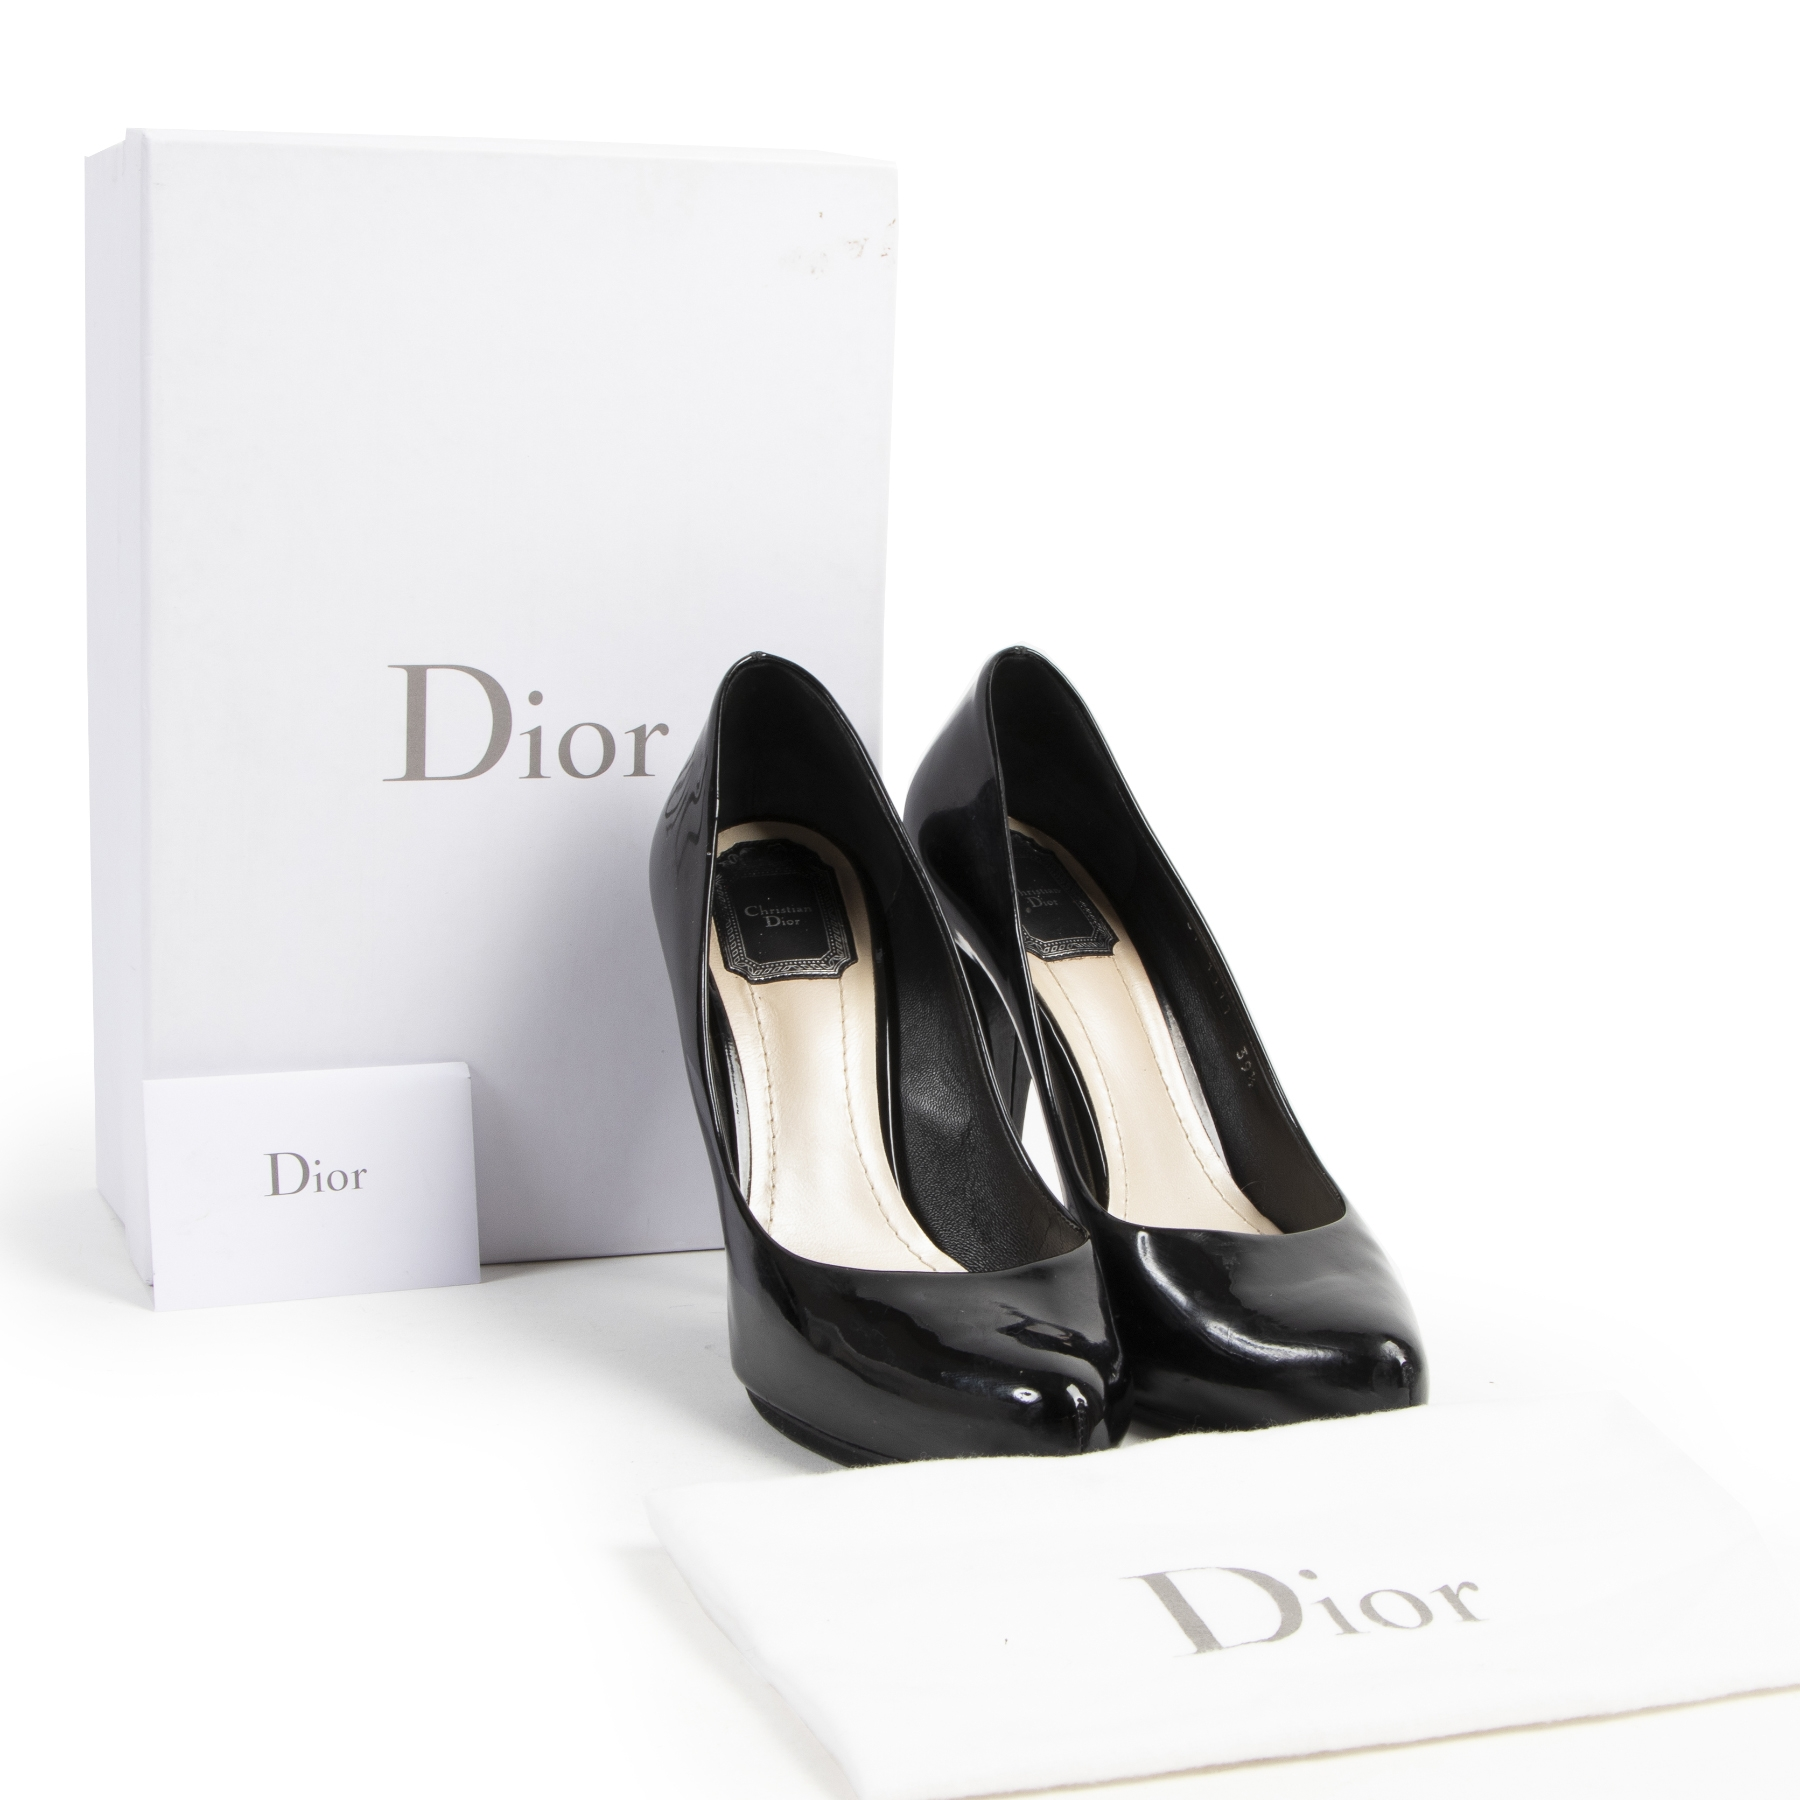 Christian Dior Miss Dior Black Pumps - size 39.5